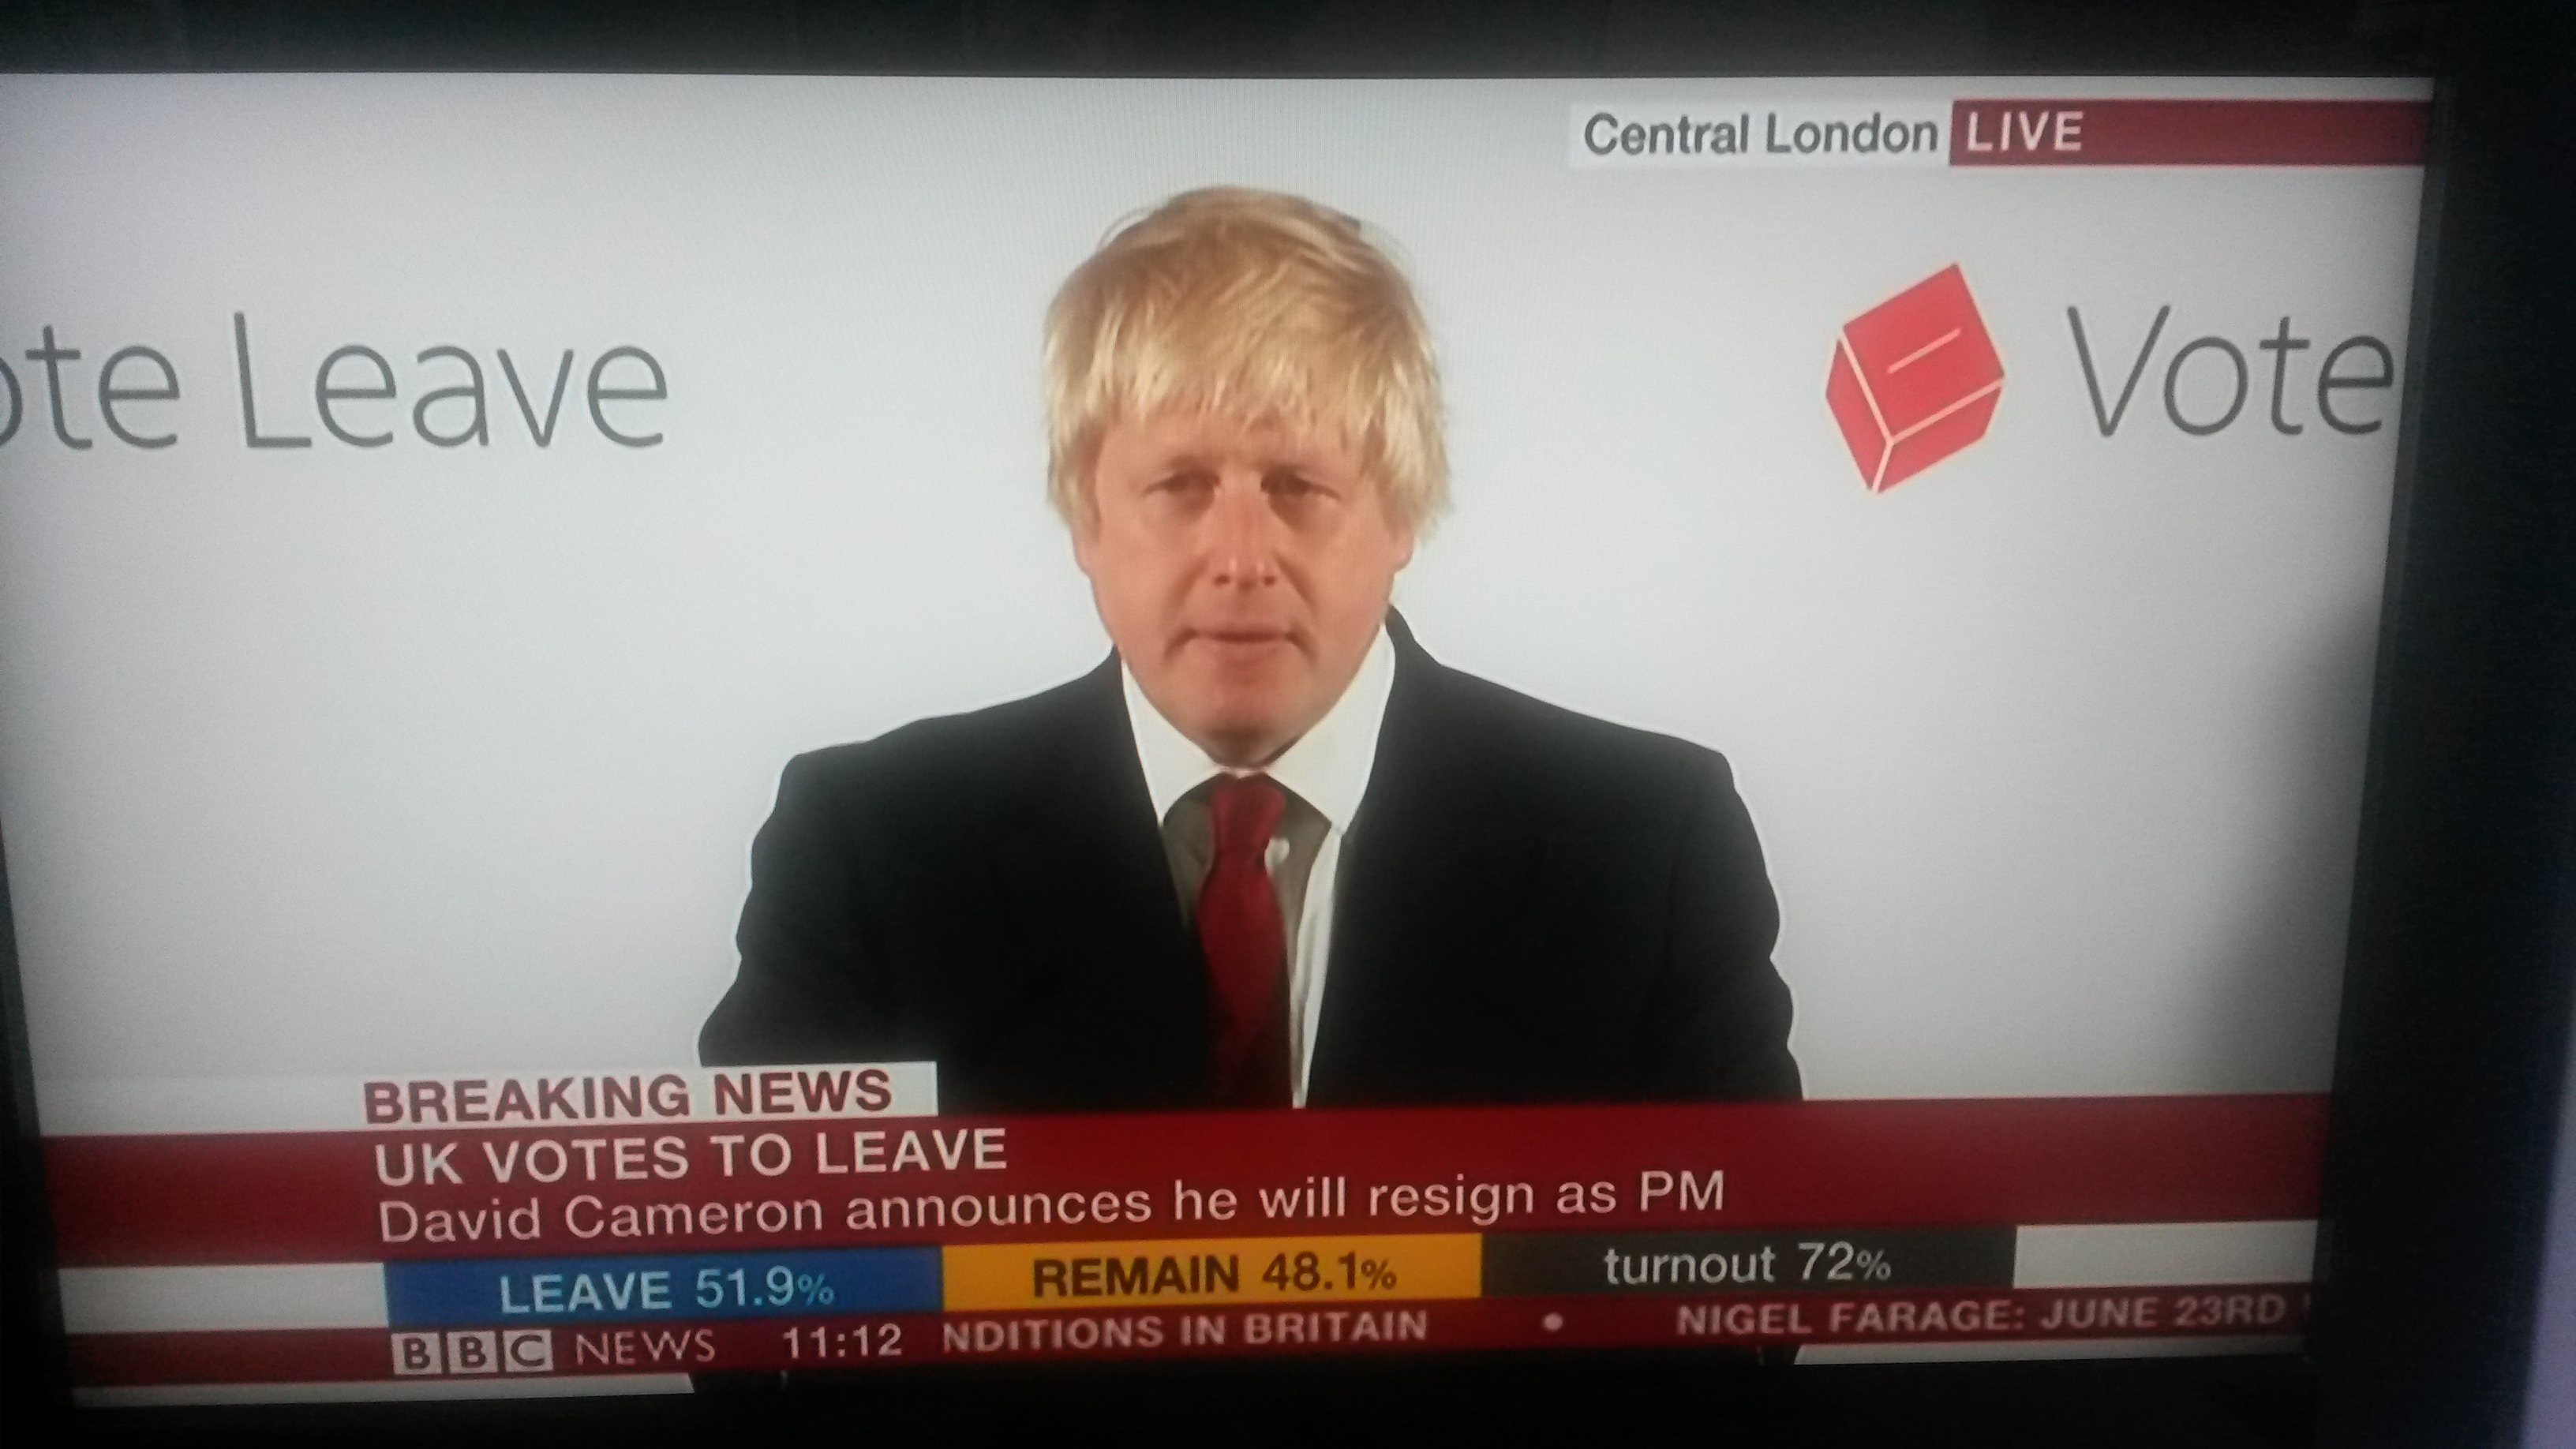 Boris Johnson is favourite to replace David Cameron at Downing Street - despite his eccentric views on climate change